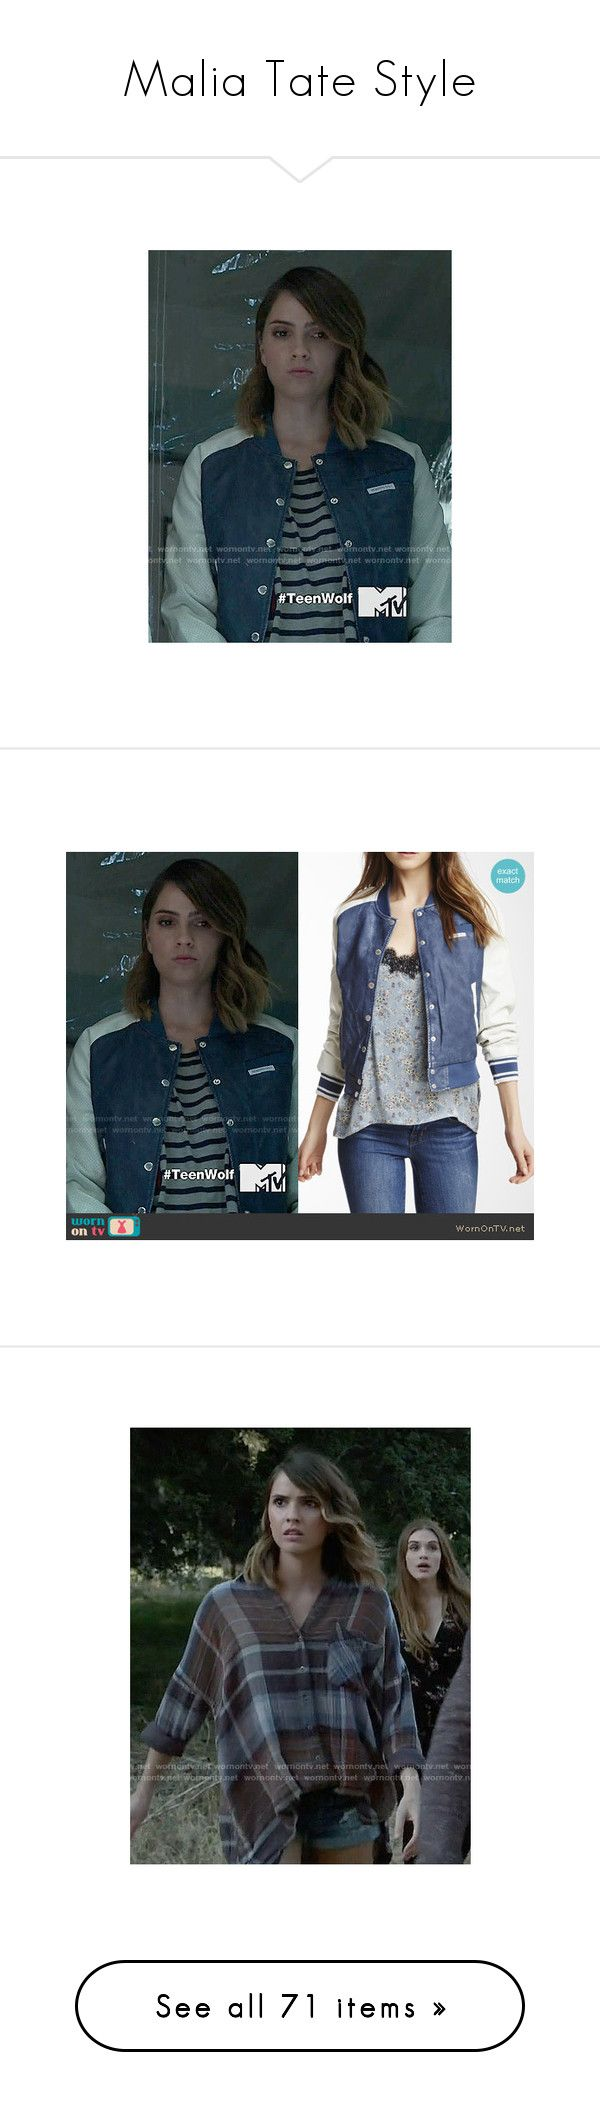 """""""Malia Tate Style"""" by demiwitch-of-mischief ❤ liked on Polyvore featuring TeenWolf, maliatate, outerwear, jackets, tops, cardigans, wolf shirt, red plaid shirt, navy plaid shirt and brown shirts"""